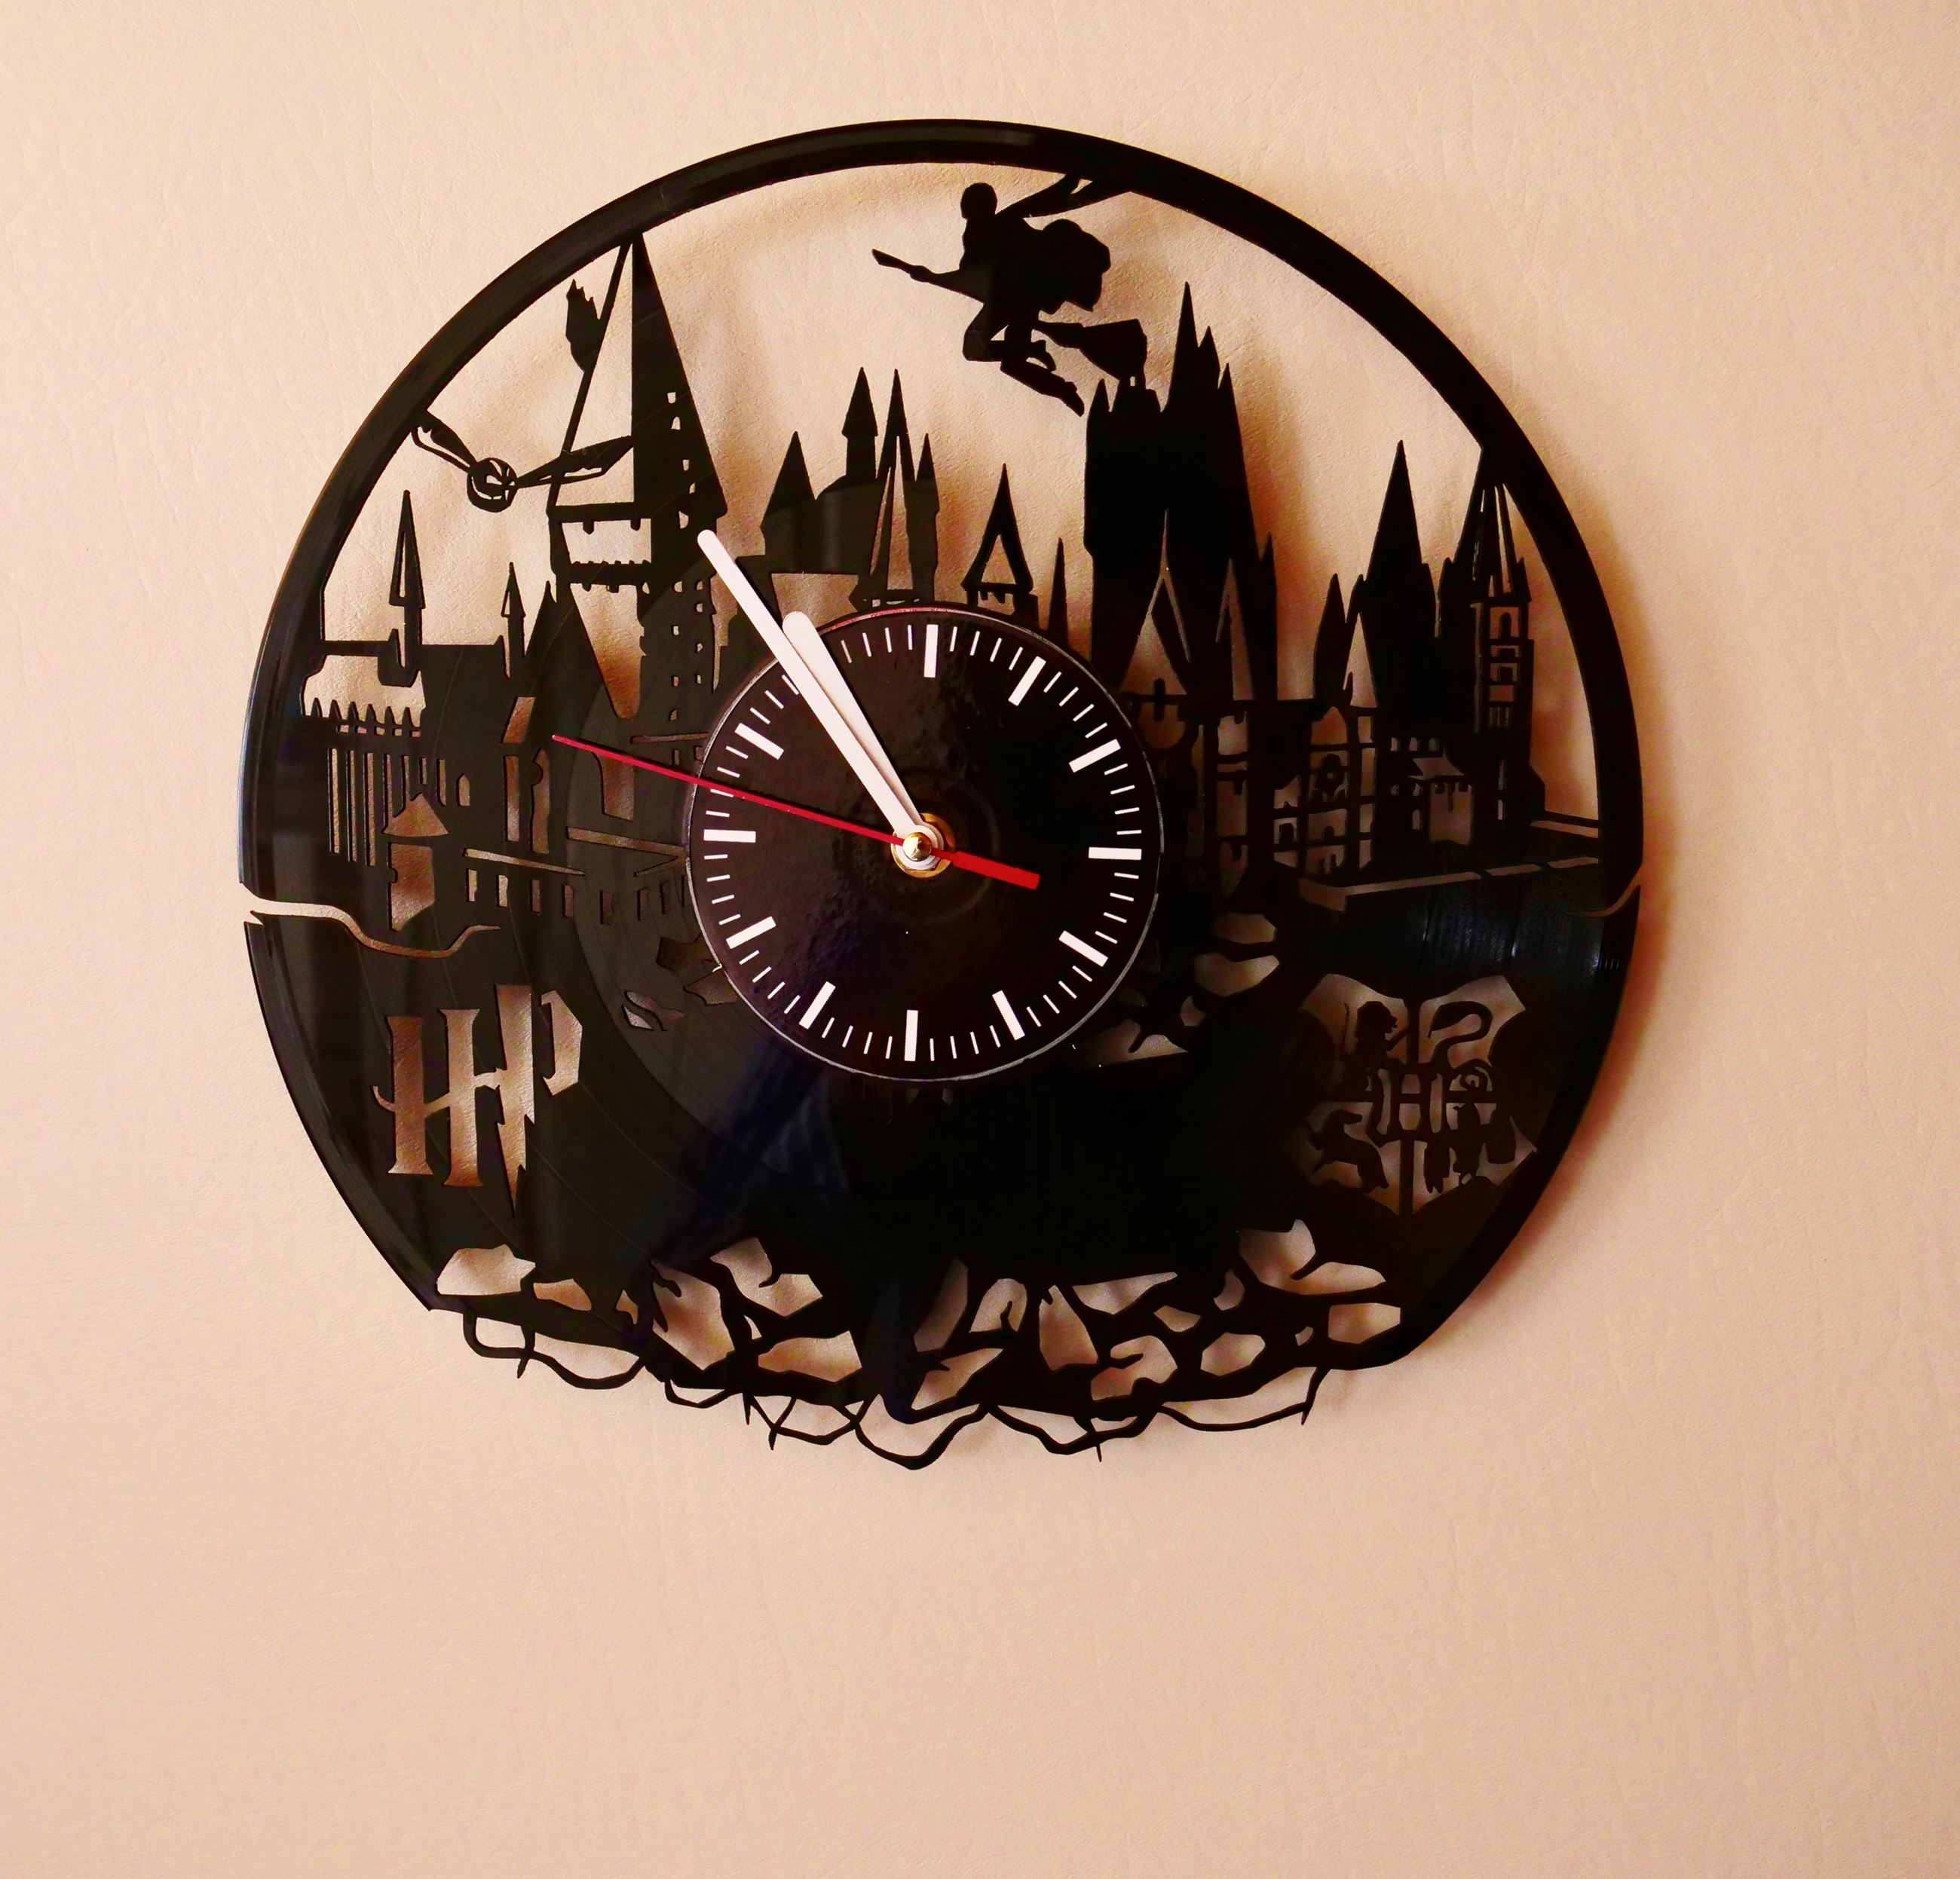 Harry Potter themed clock in Harry Potter tiny home at Docs Drive-In Theatre